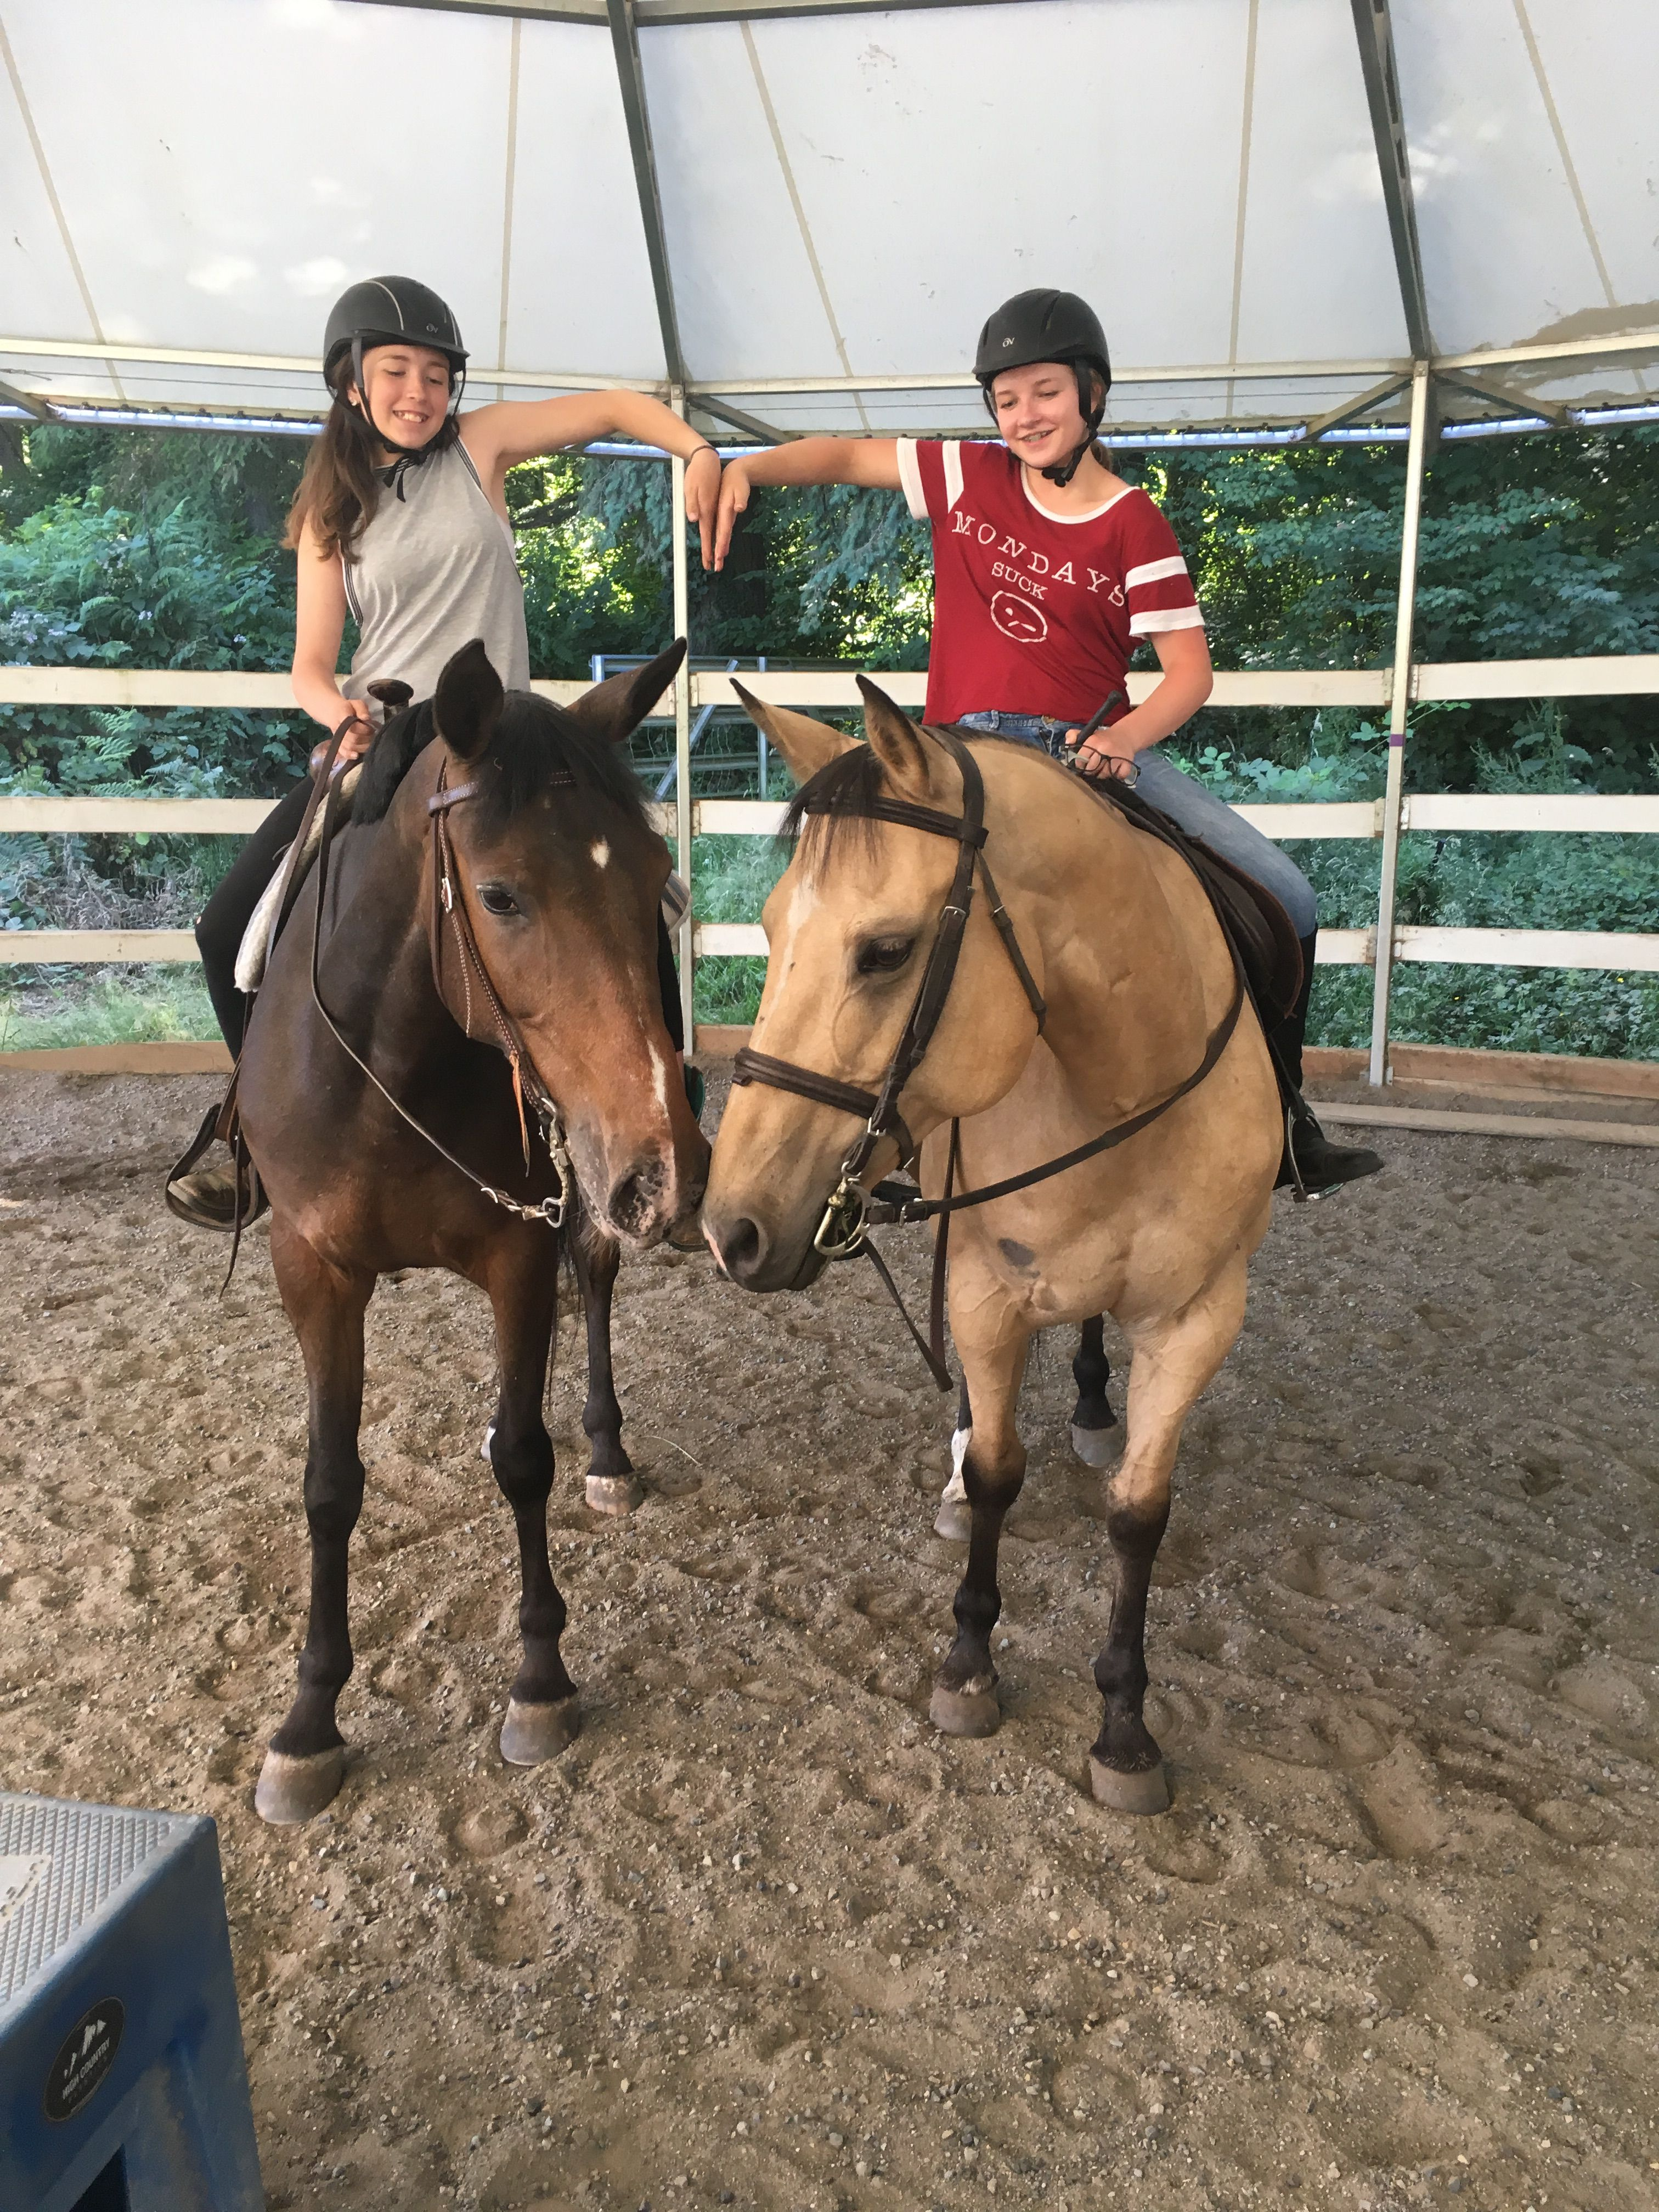 Best Friends Horseback Riding Ride Like A Girl Eva Board